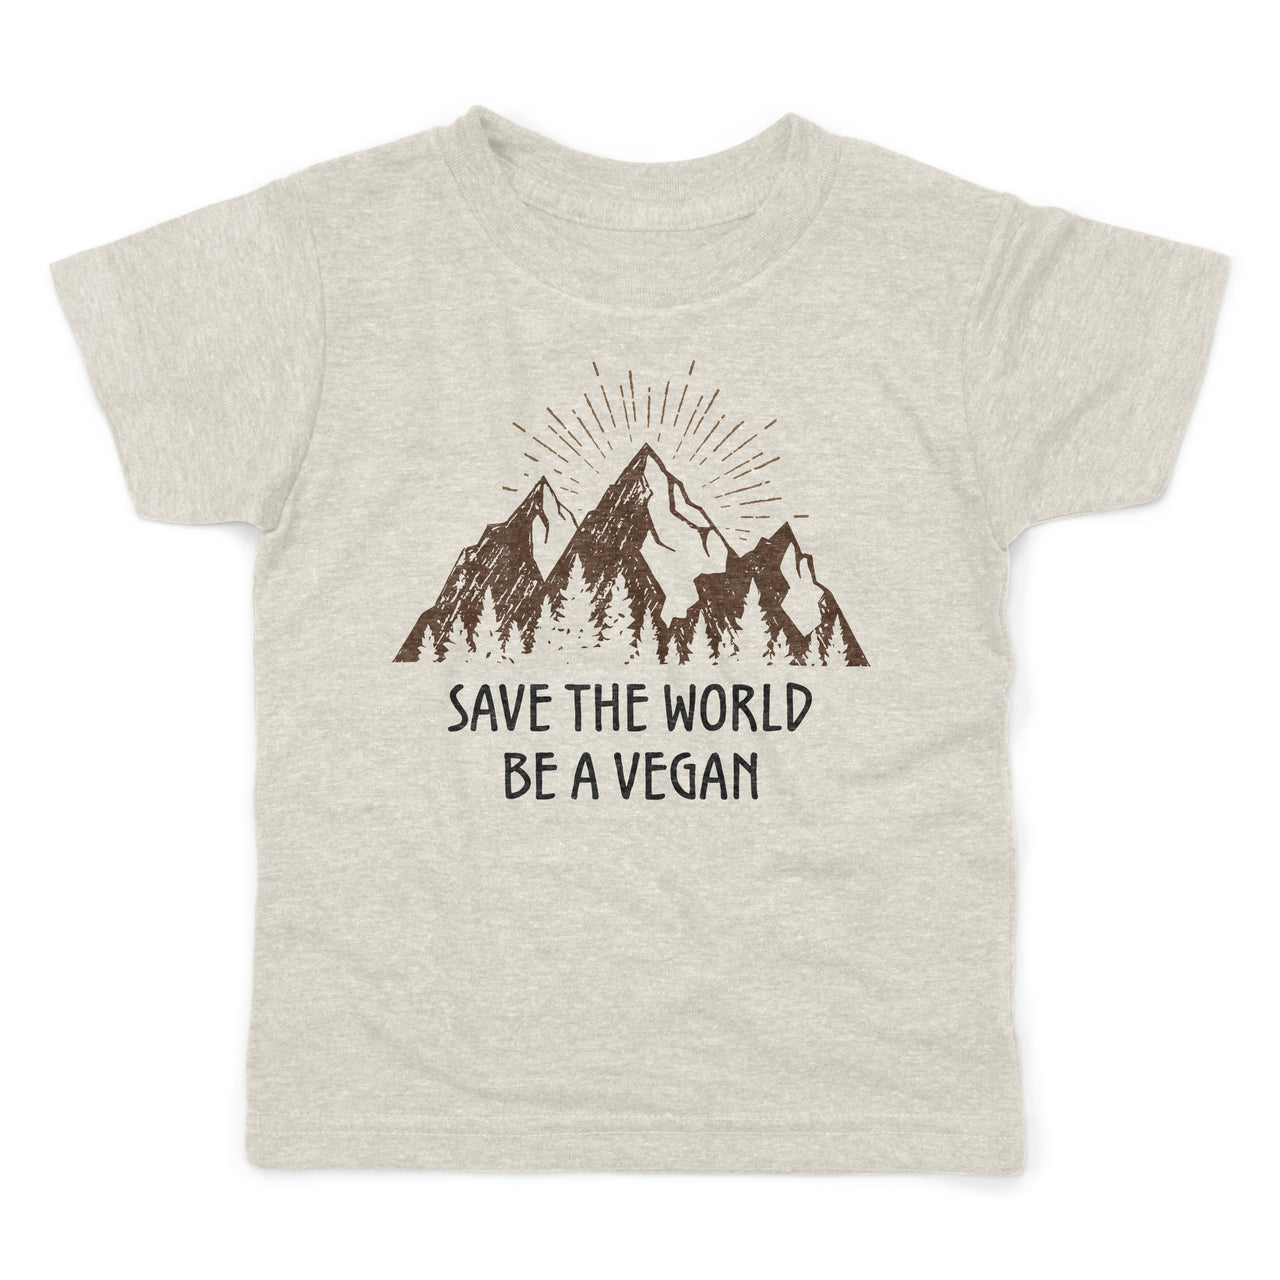 Save the world be a vegan organic cotton kids shirt